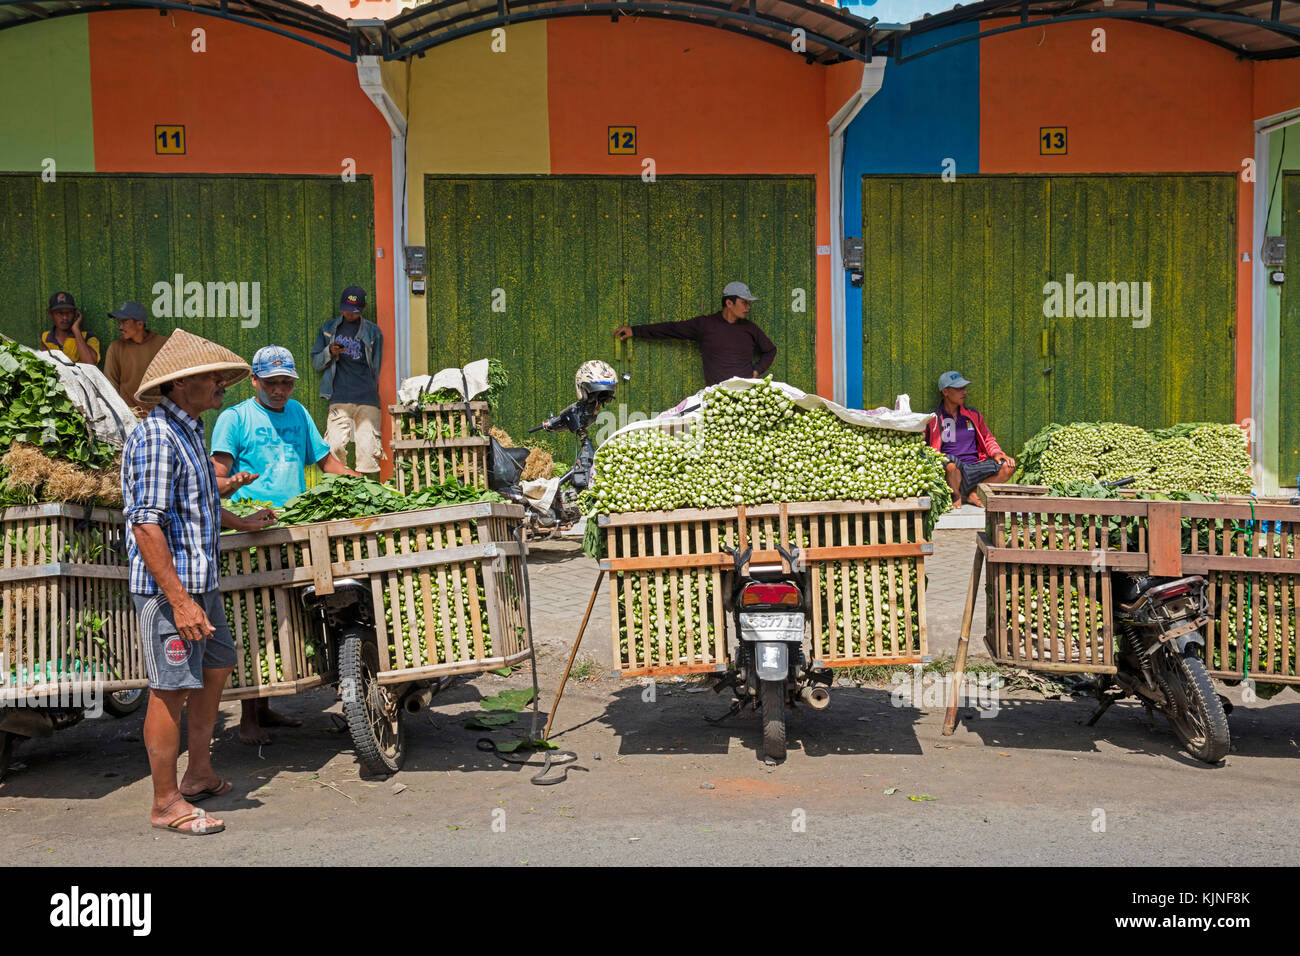 Javanese vendors with motorbikes heavily laden with vegetables selling greens at food market in the village Tumpang, - Stock Image